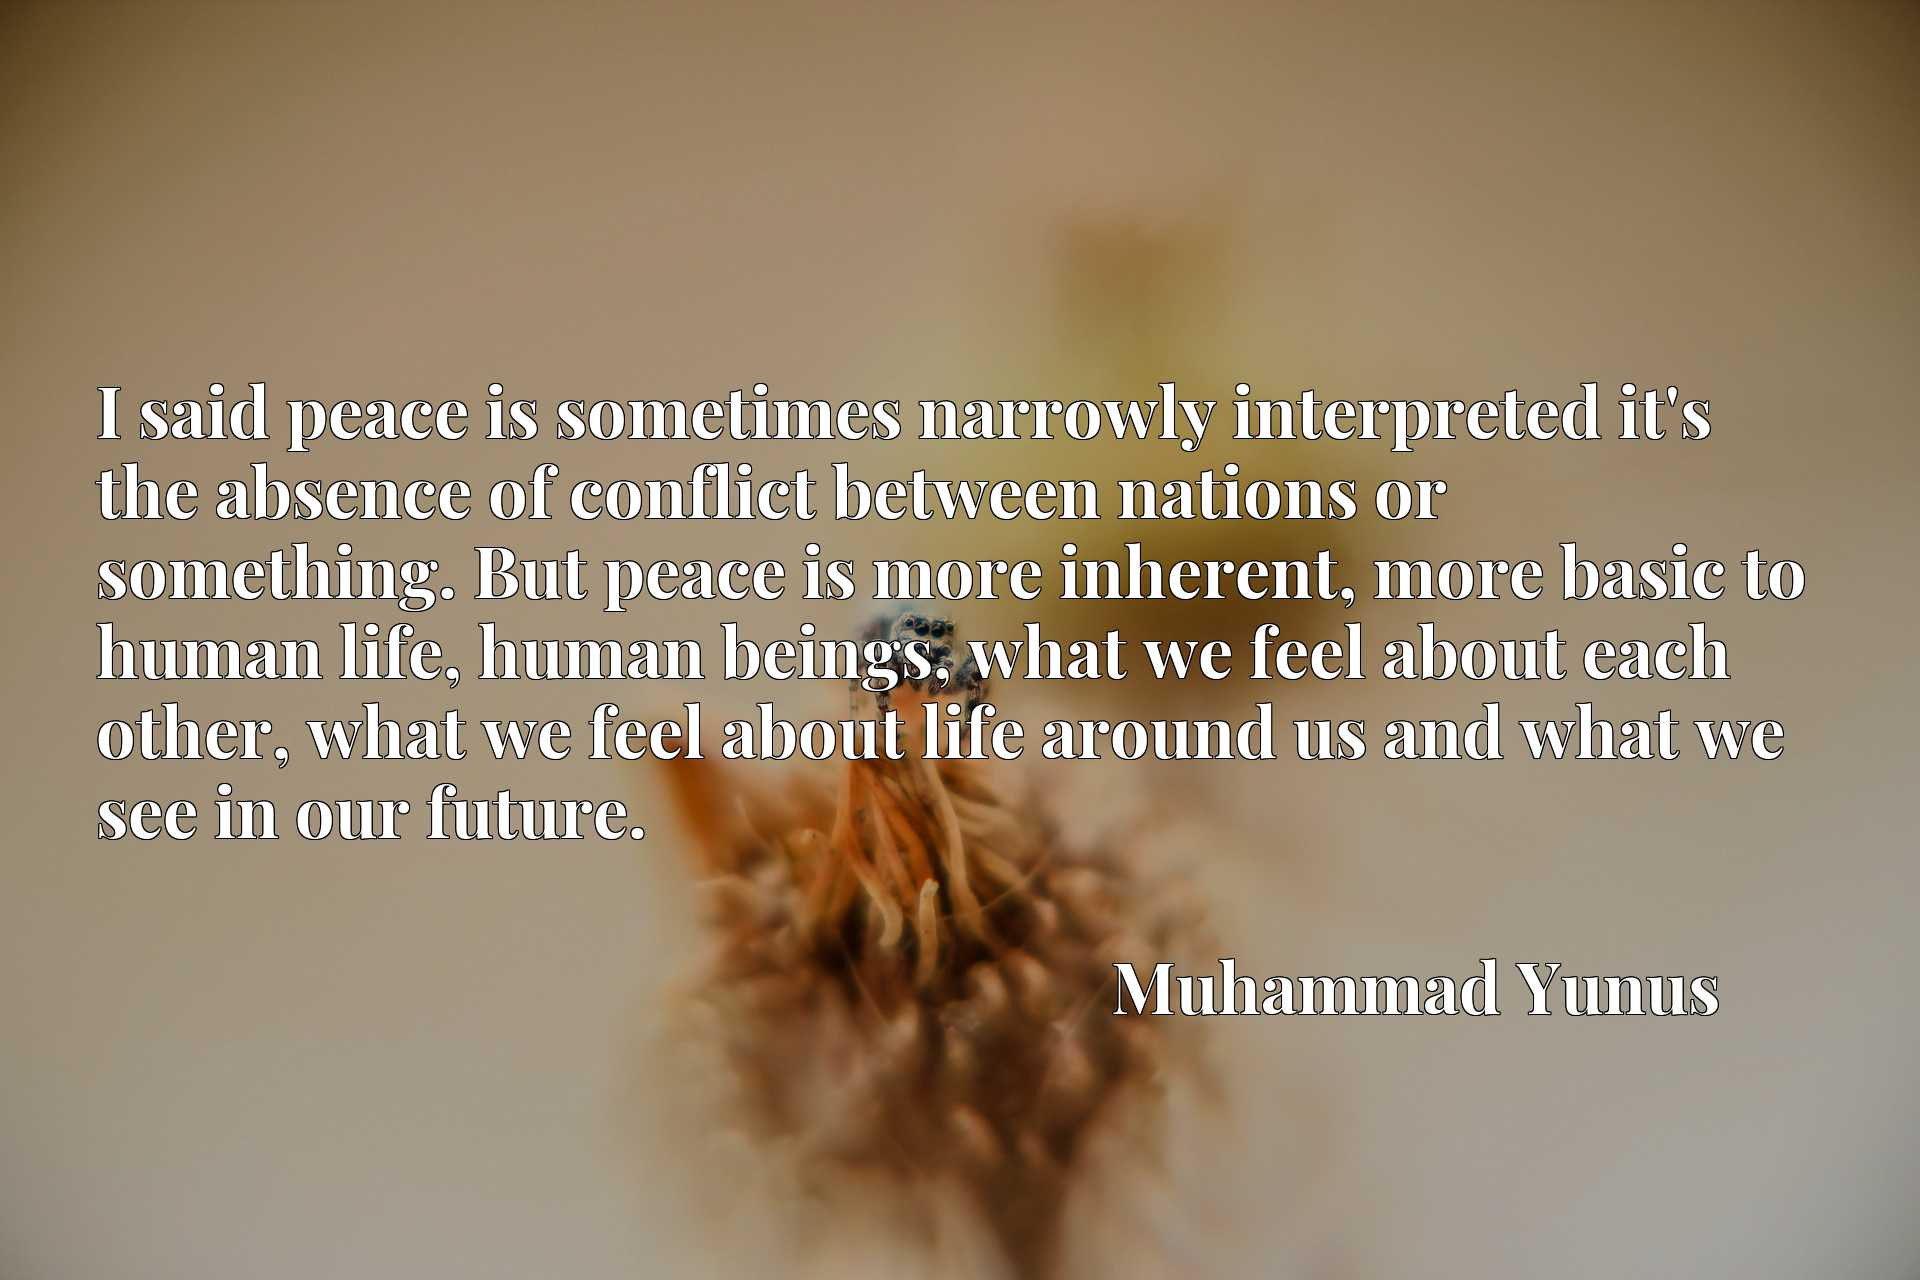 I said peace is sometimes narrowly interpreted it's the absence of conflict between nations or something. But peace is more inherent, more basic to human life, human beings, what we feel about each other, what we feel about life around us and what we see in our future.